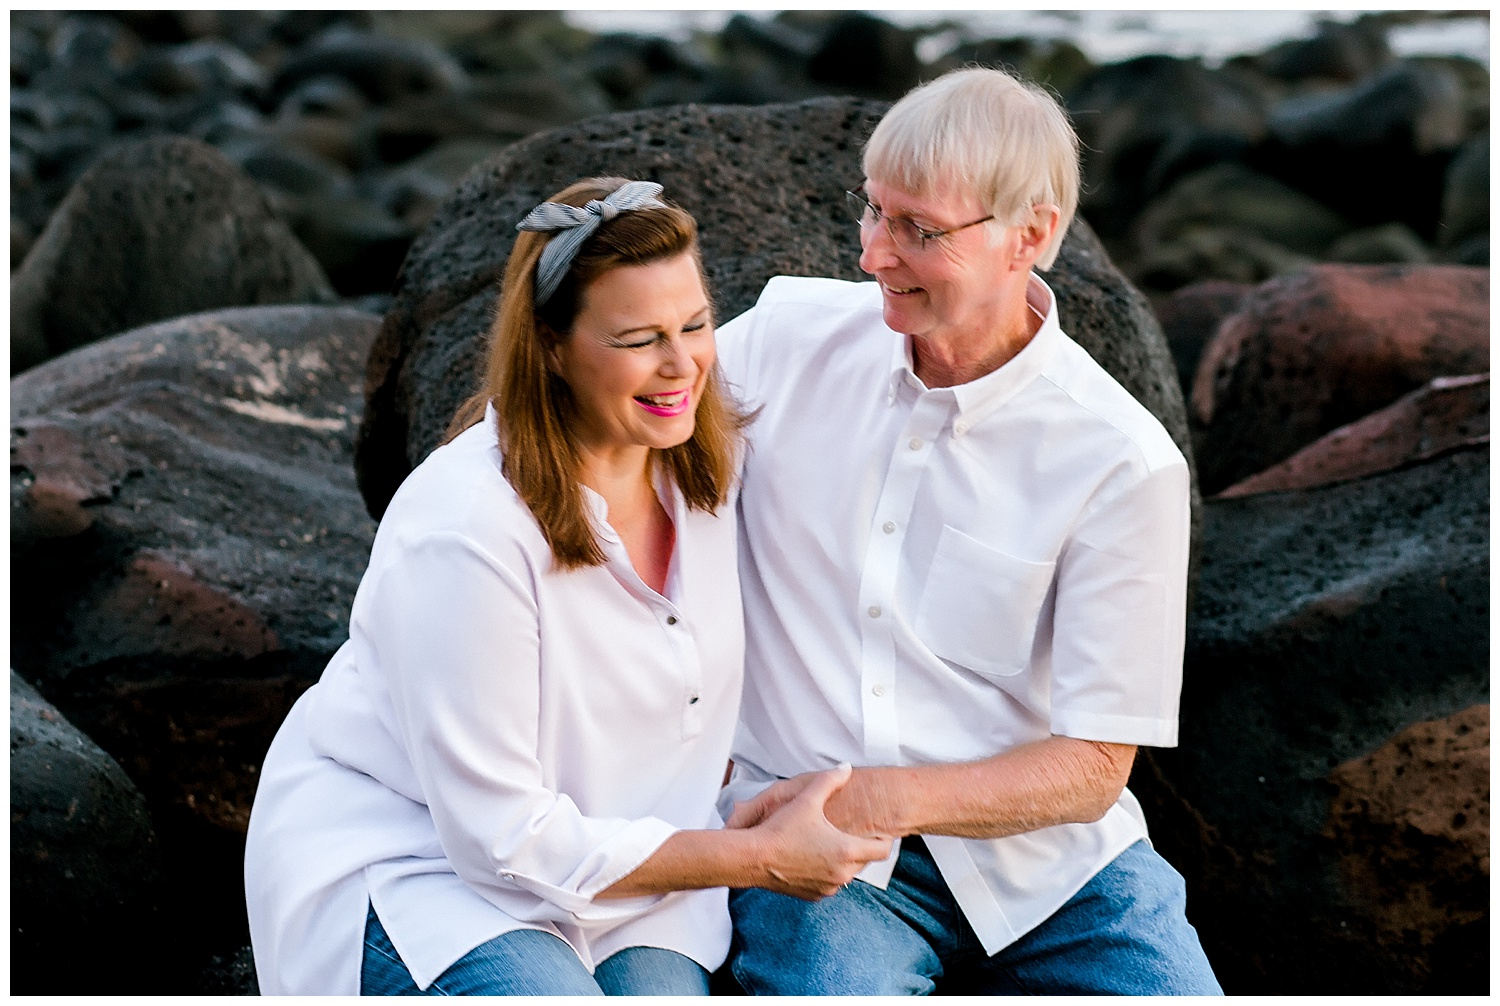 MauiVacationPhotographerCouplesPortraits_0003.jpg